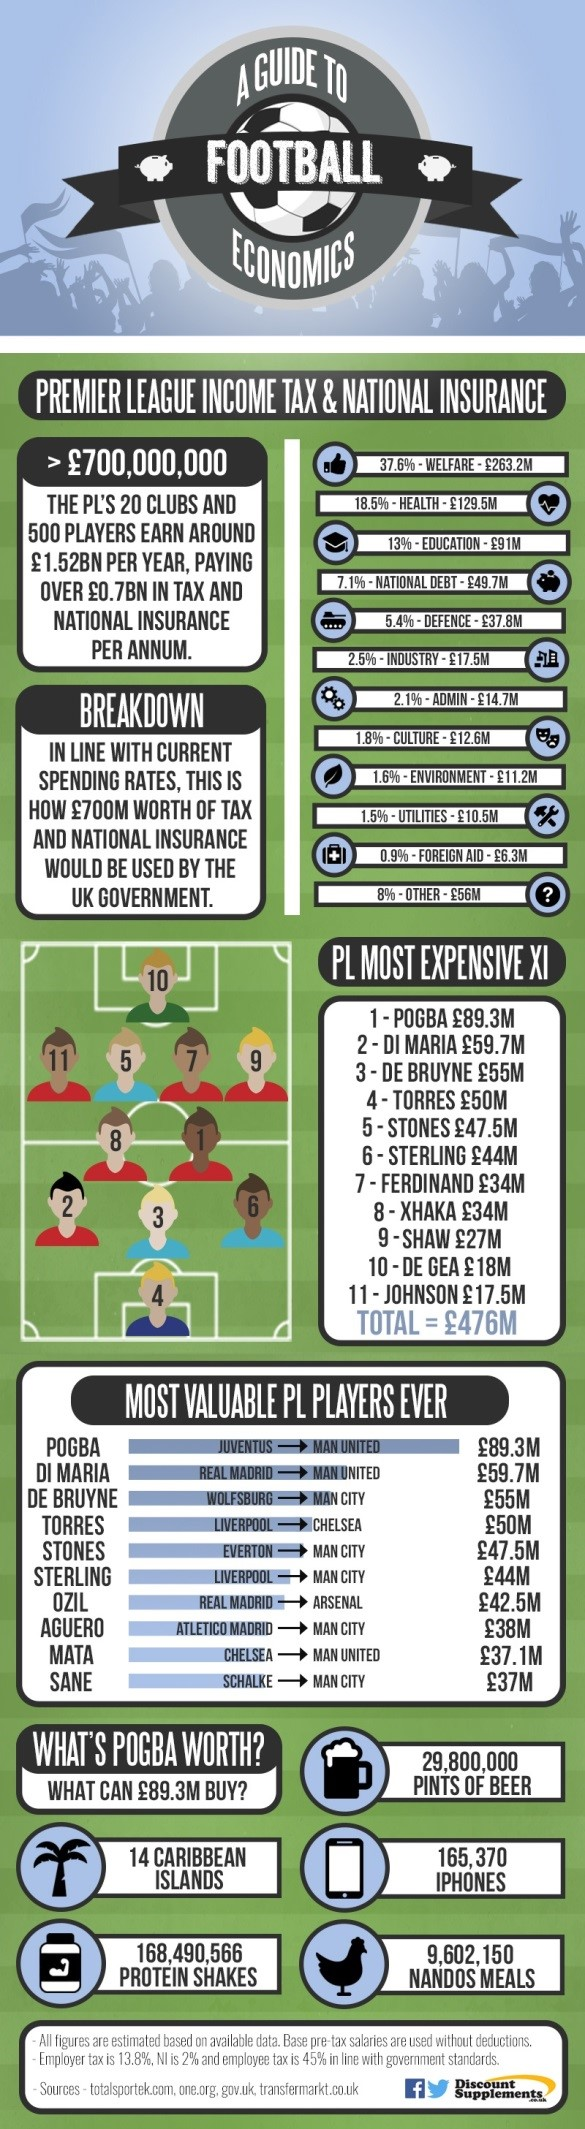 Football economics transfer special infographic